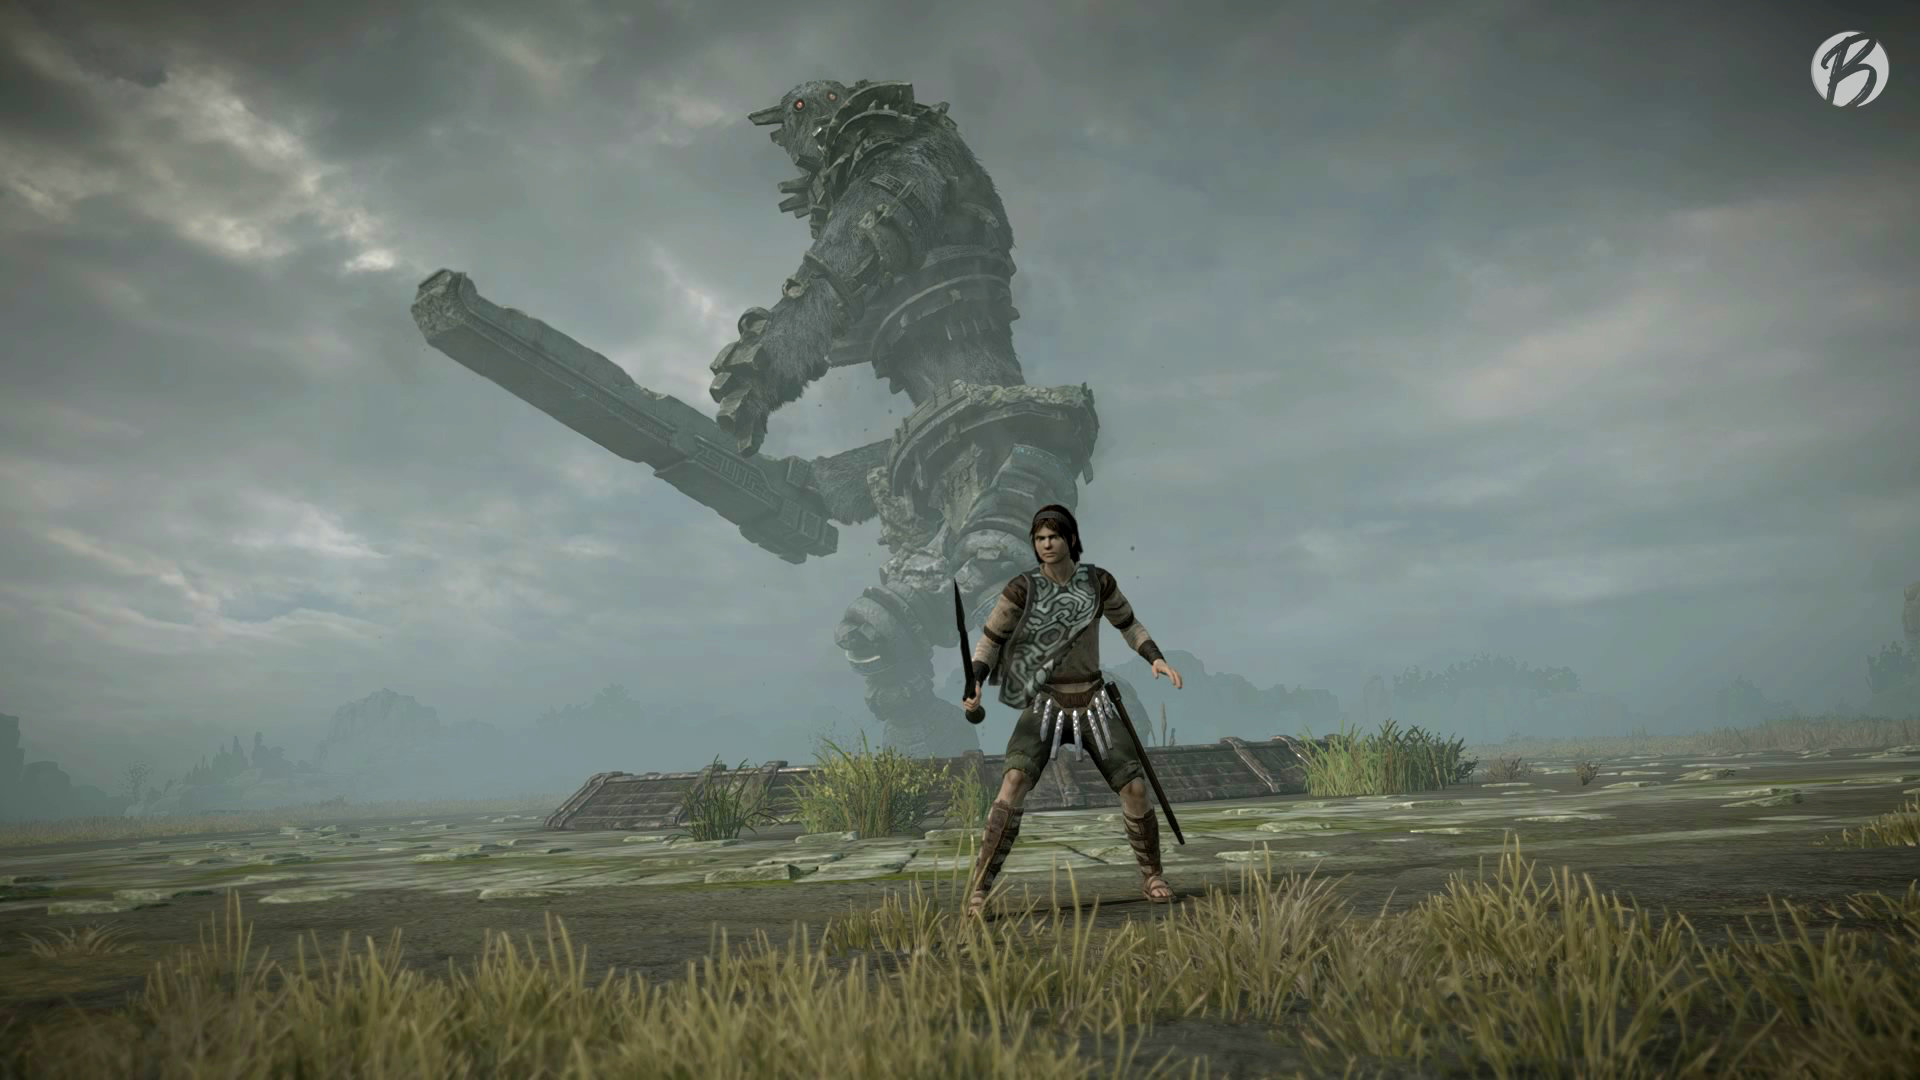 Shadow of the Colossus - Gaius